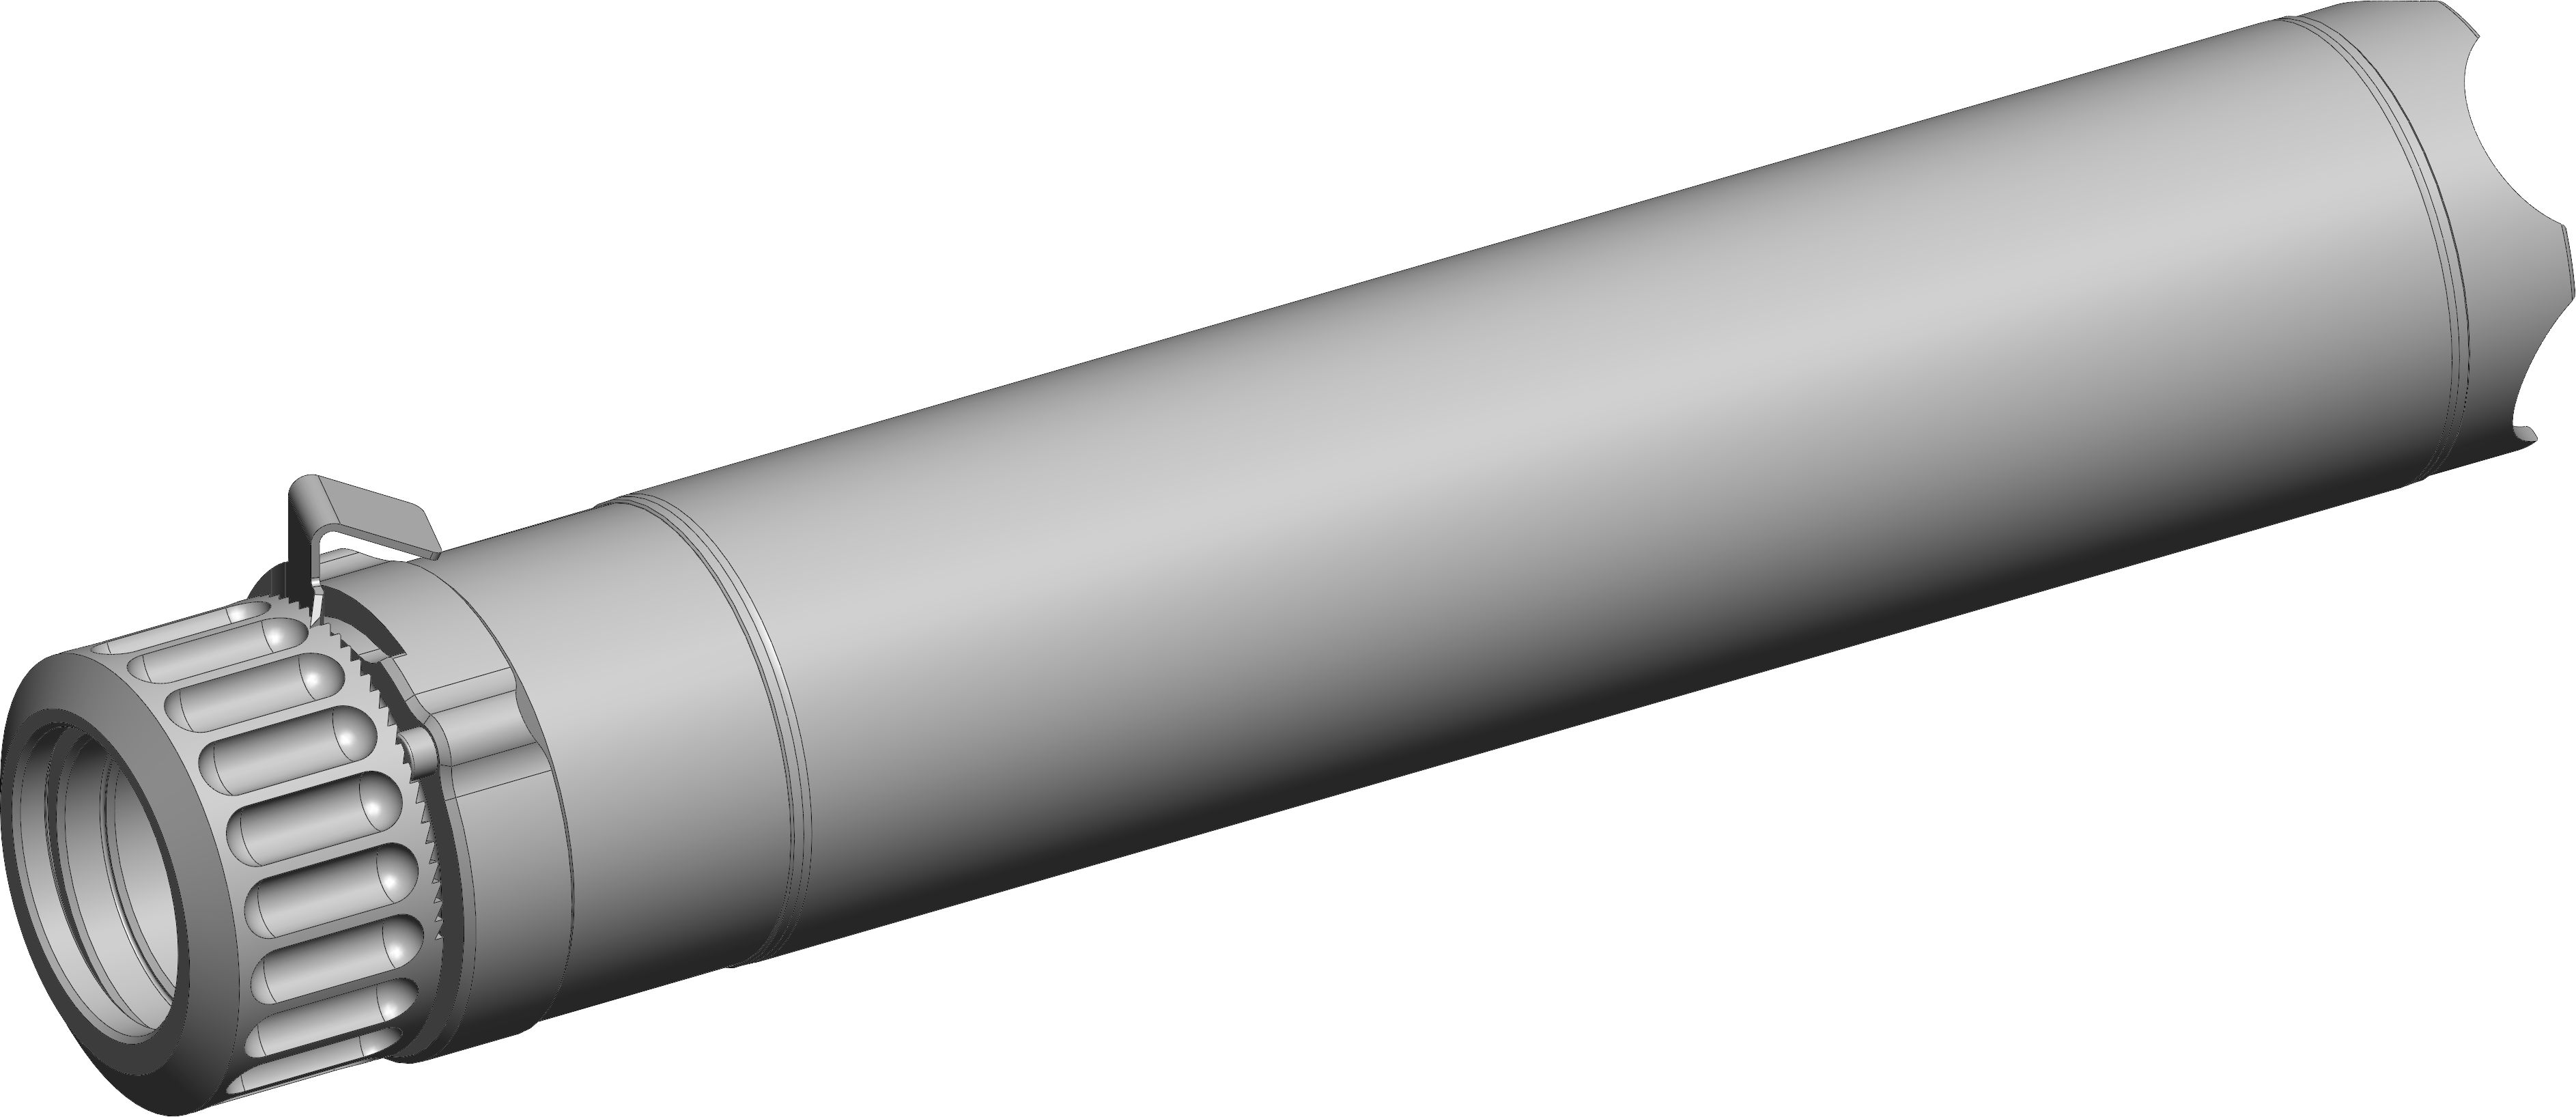 .223 Rem Rotex-IIA rifle suppressor